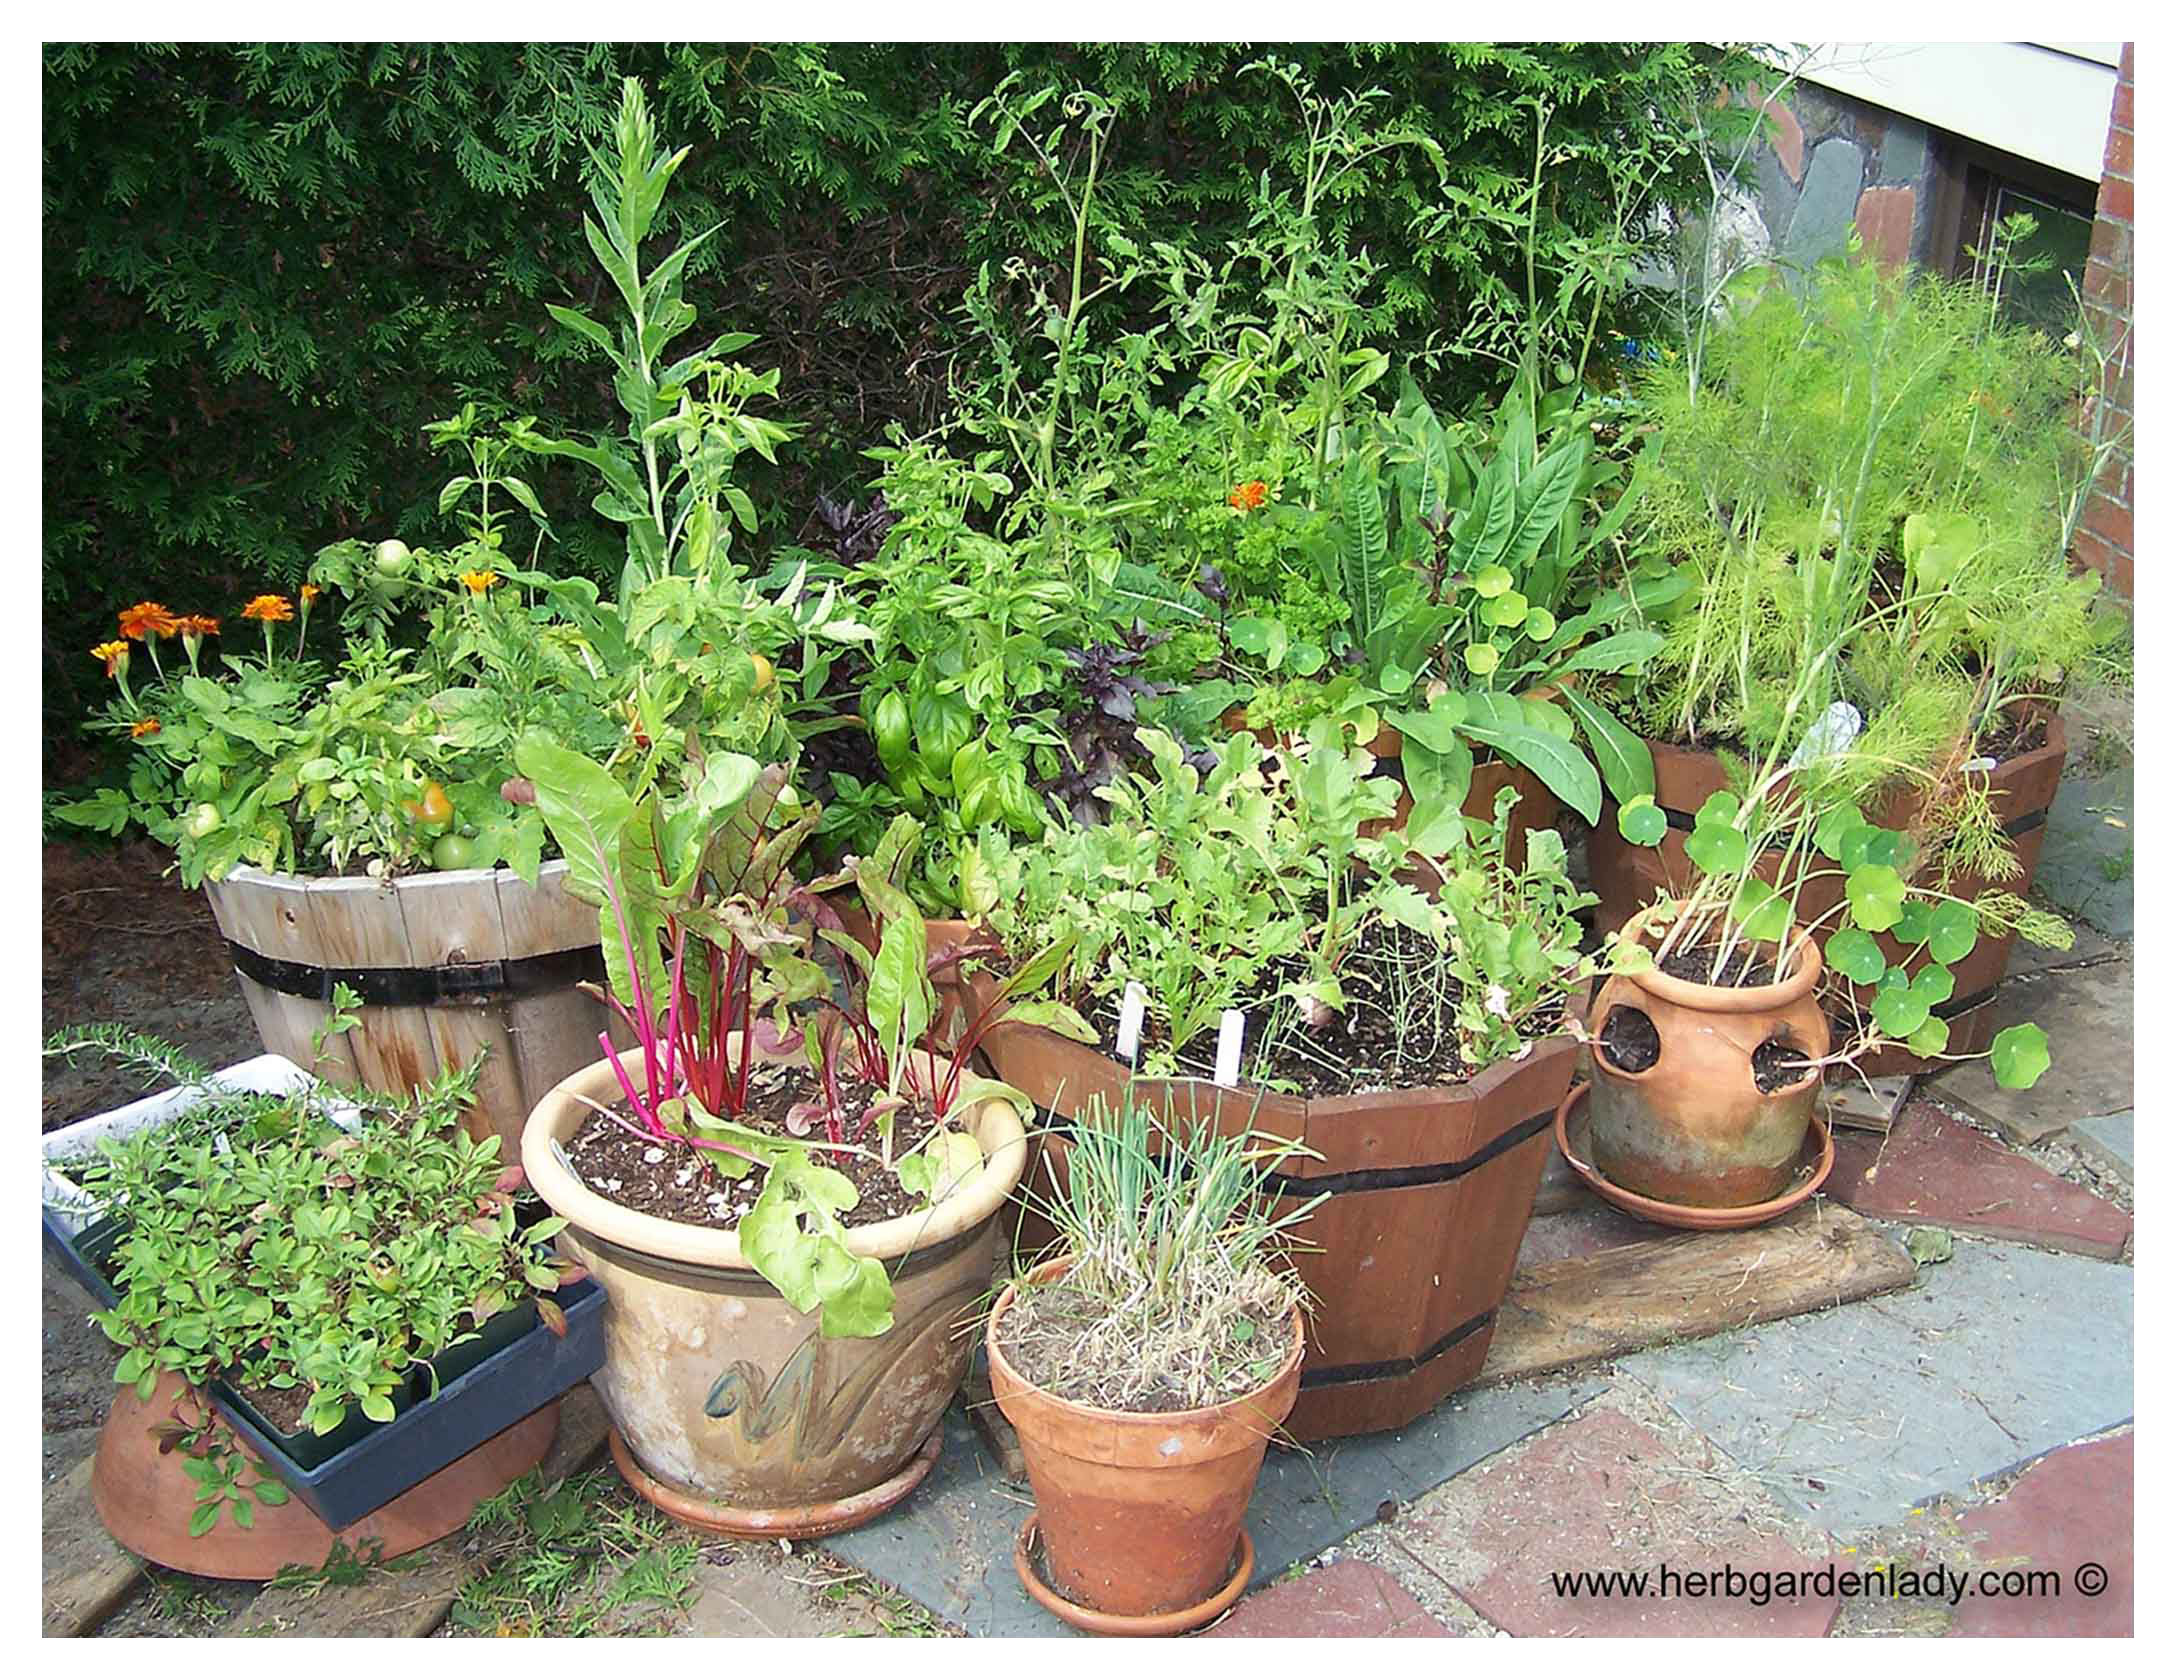 Grow A Culinary Herb Garden For Cooking, Drying Or Herb Tea